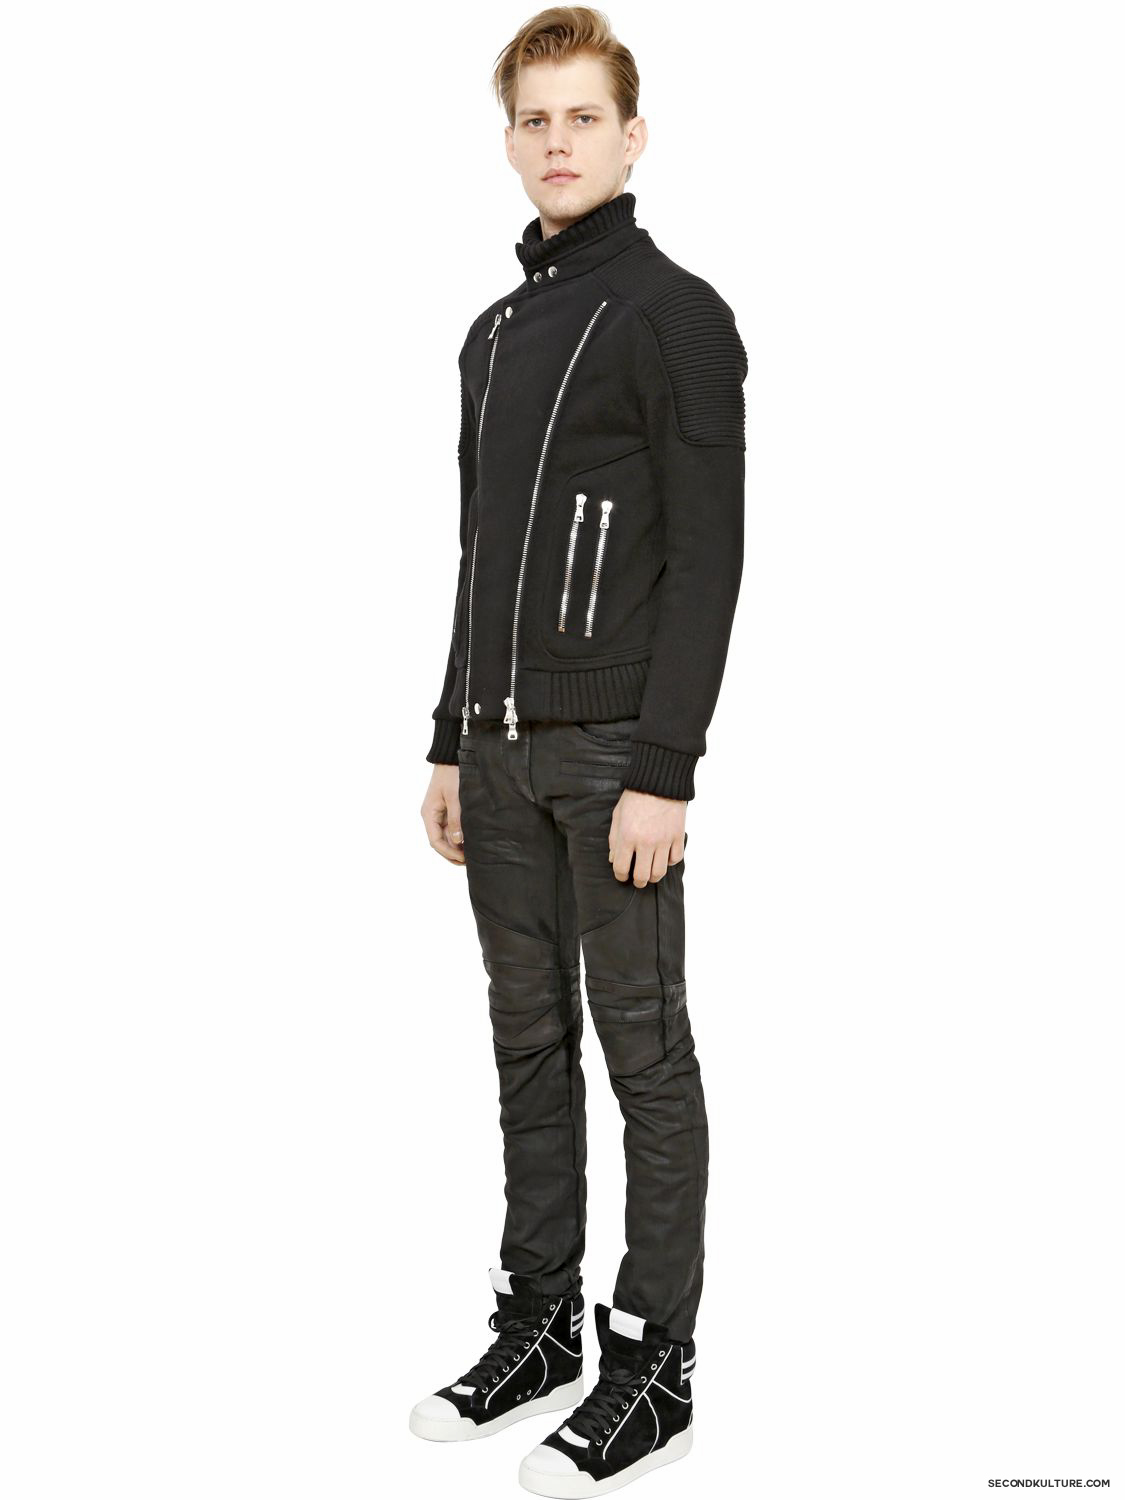 Balmain-17cm-Black-Waxed-Coated-Denim-Biker-Jeans-Fall-Winter-2015-2